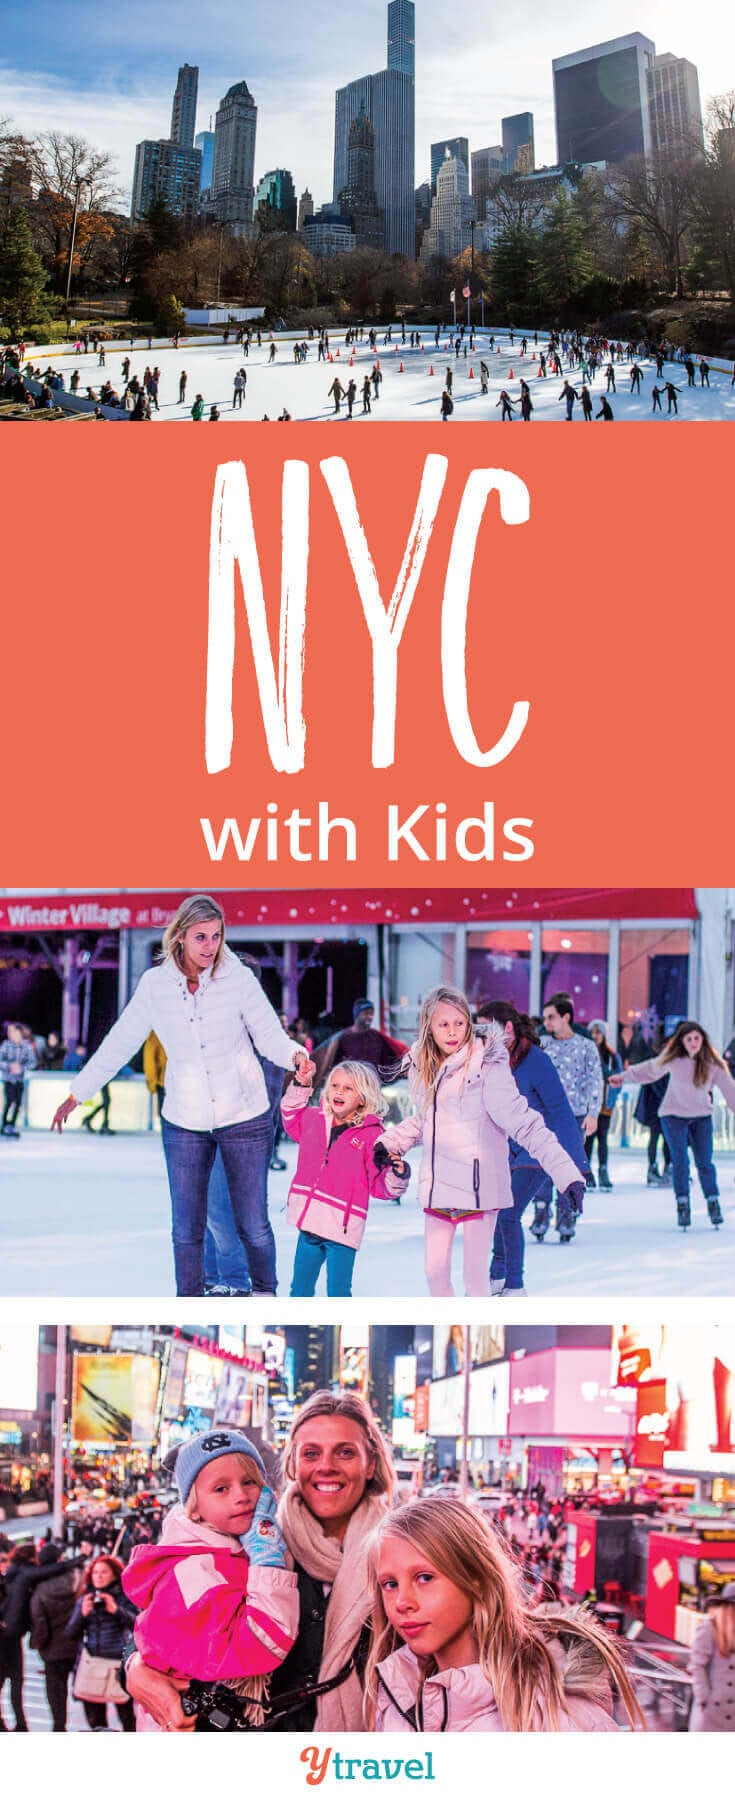 Things to do in NYC with kids - Planning a family trip to New York City? Check out these 15 activities you and your kids will love!